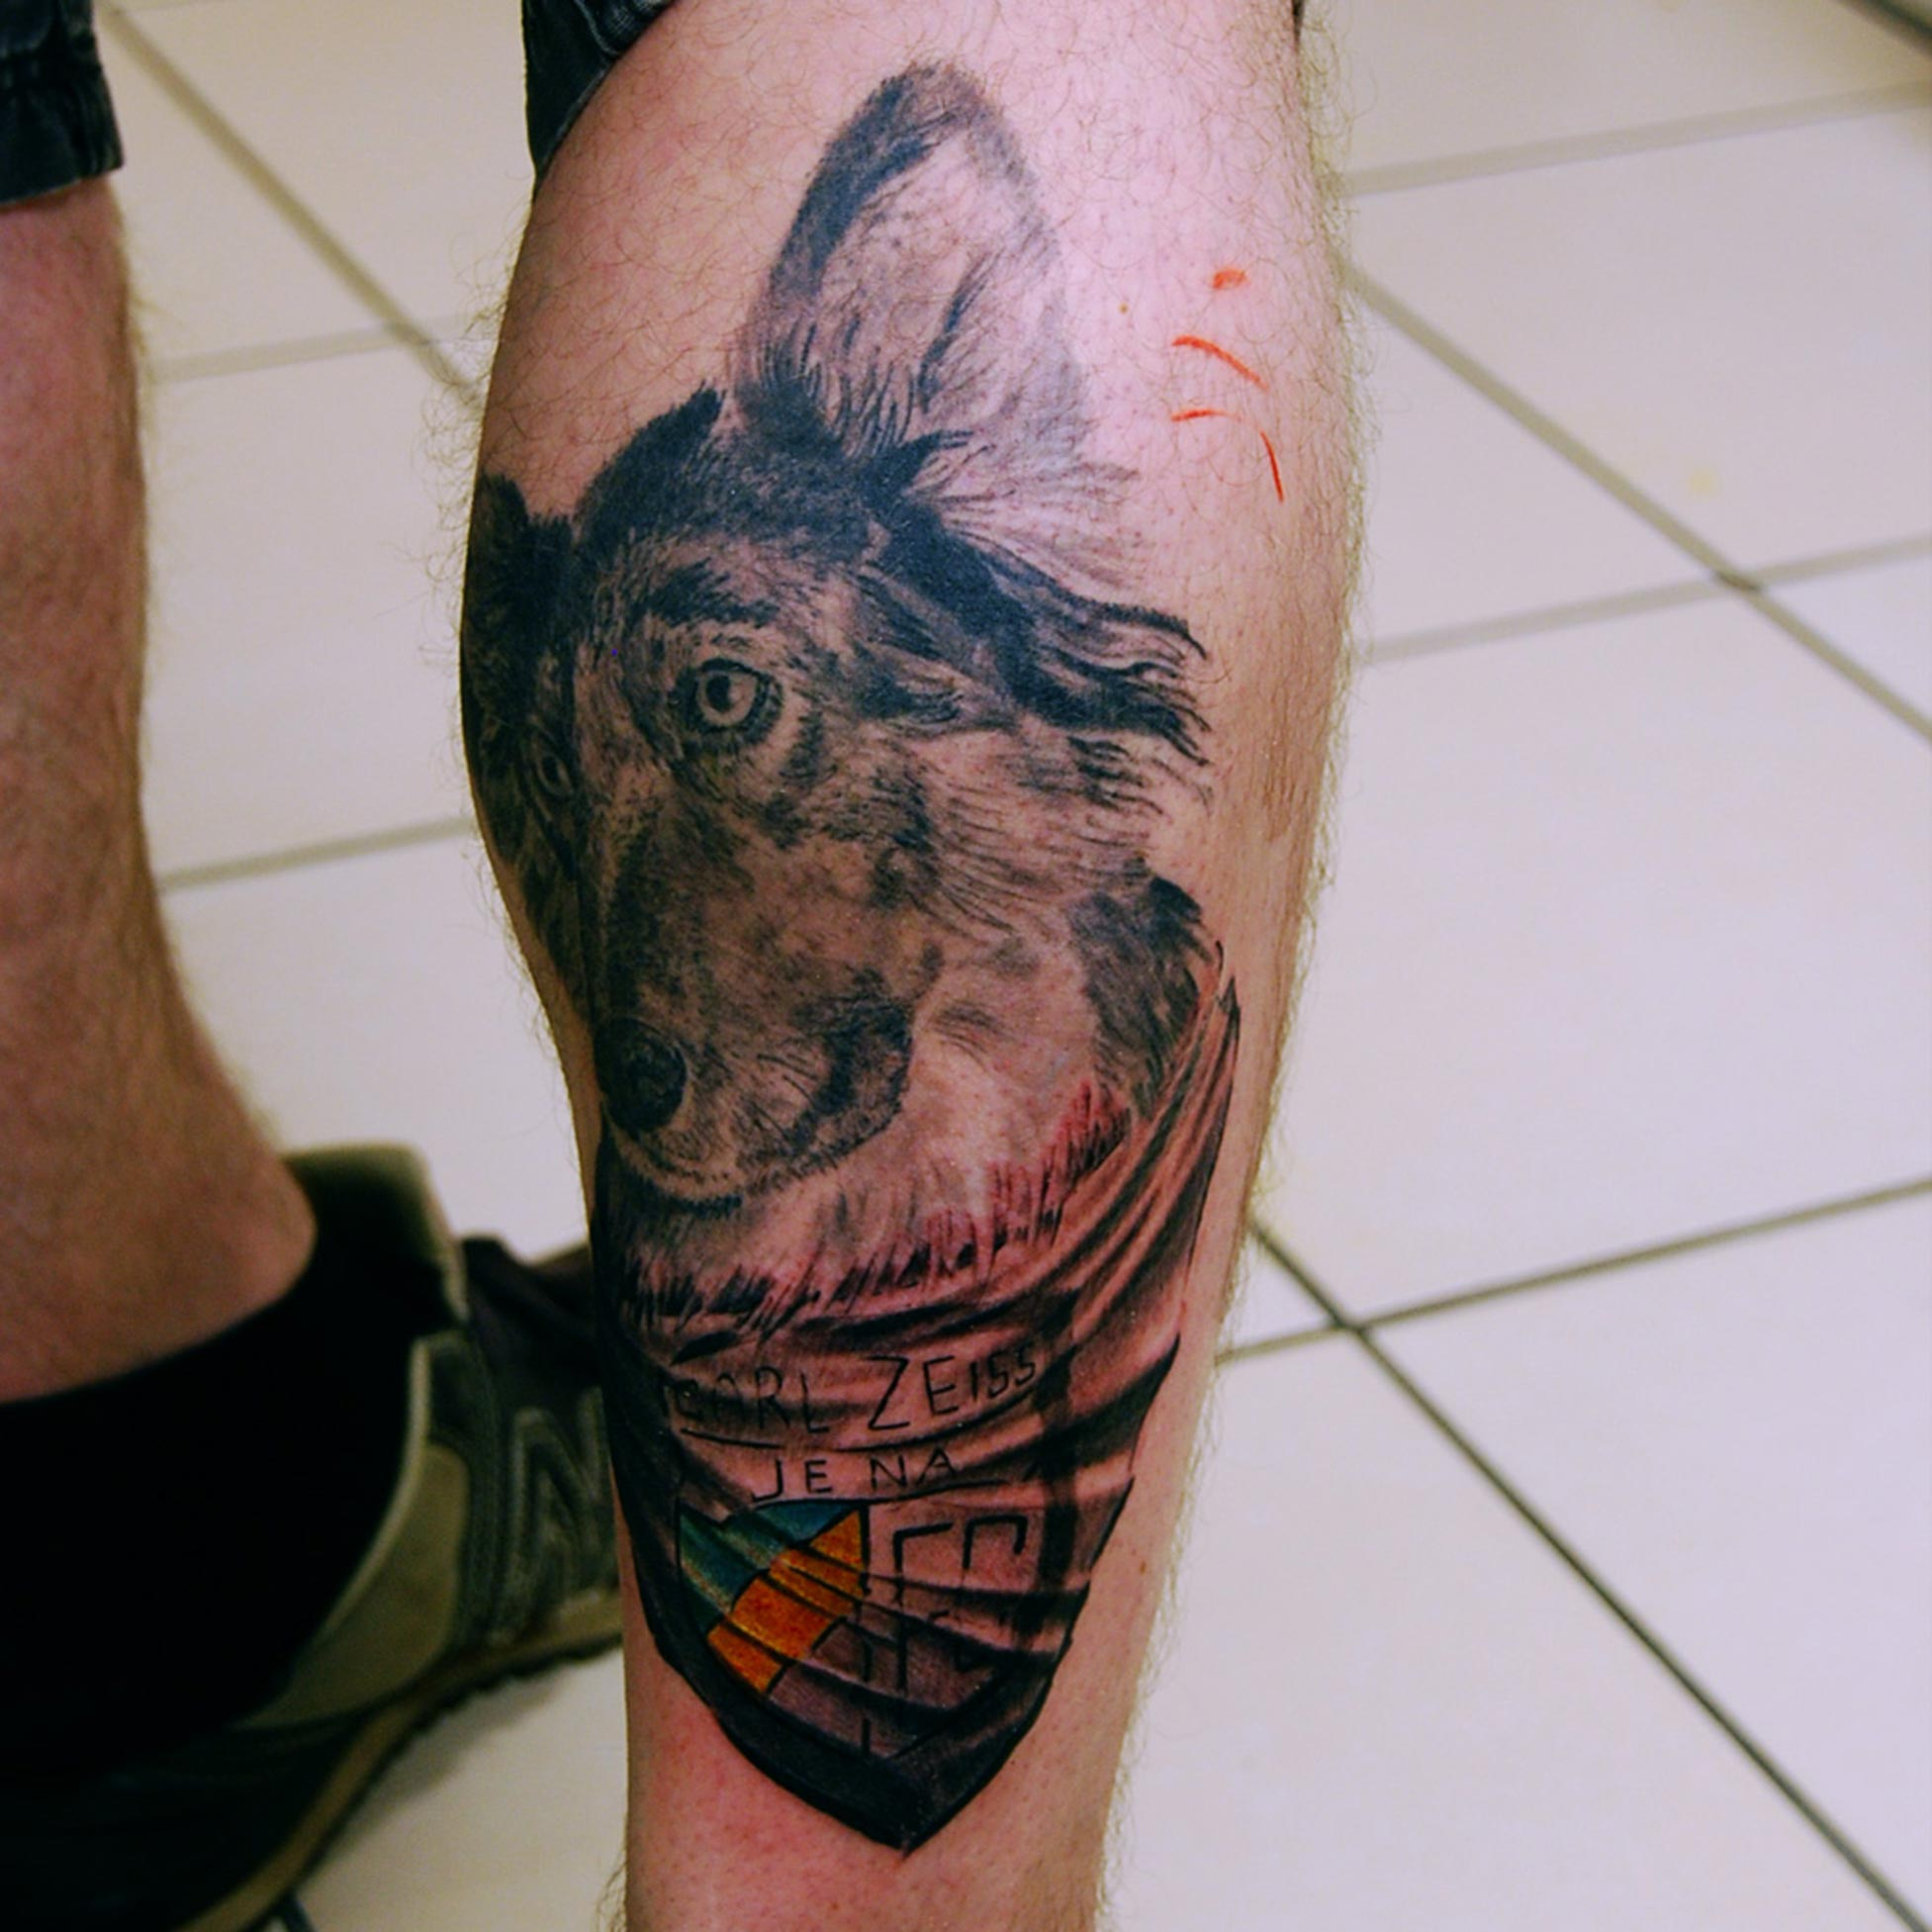 shit for life hits for life tattoo raul taufkirchen m nchen bayern hunde. Black Bedroom Furniture Sets. Home Design Ideas